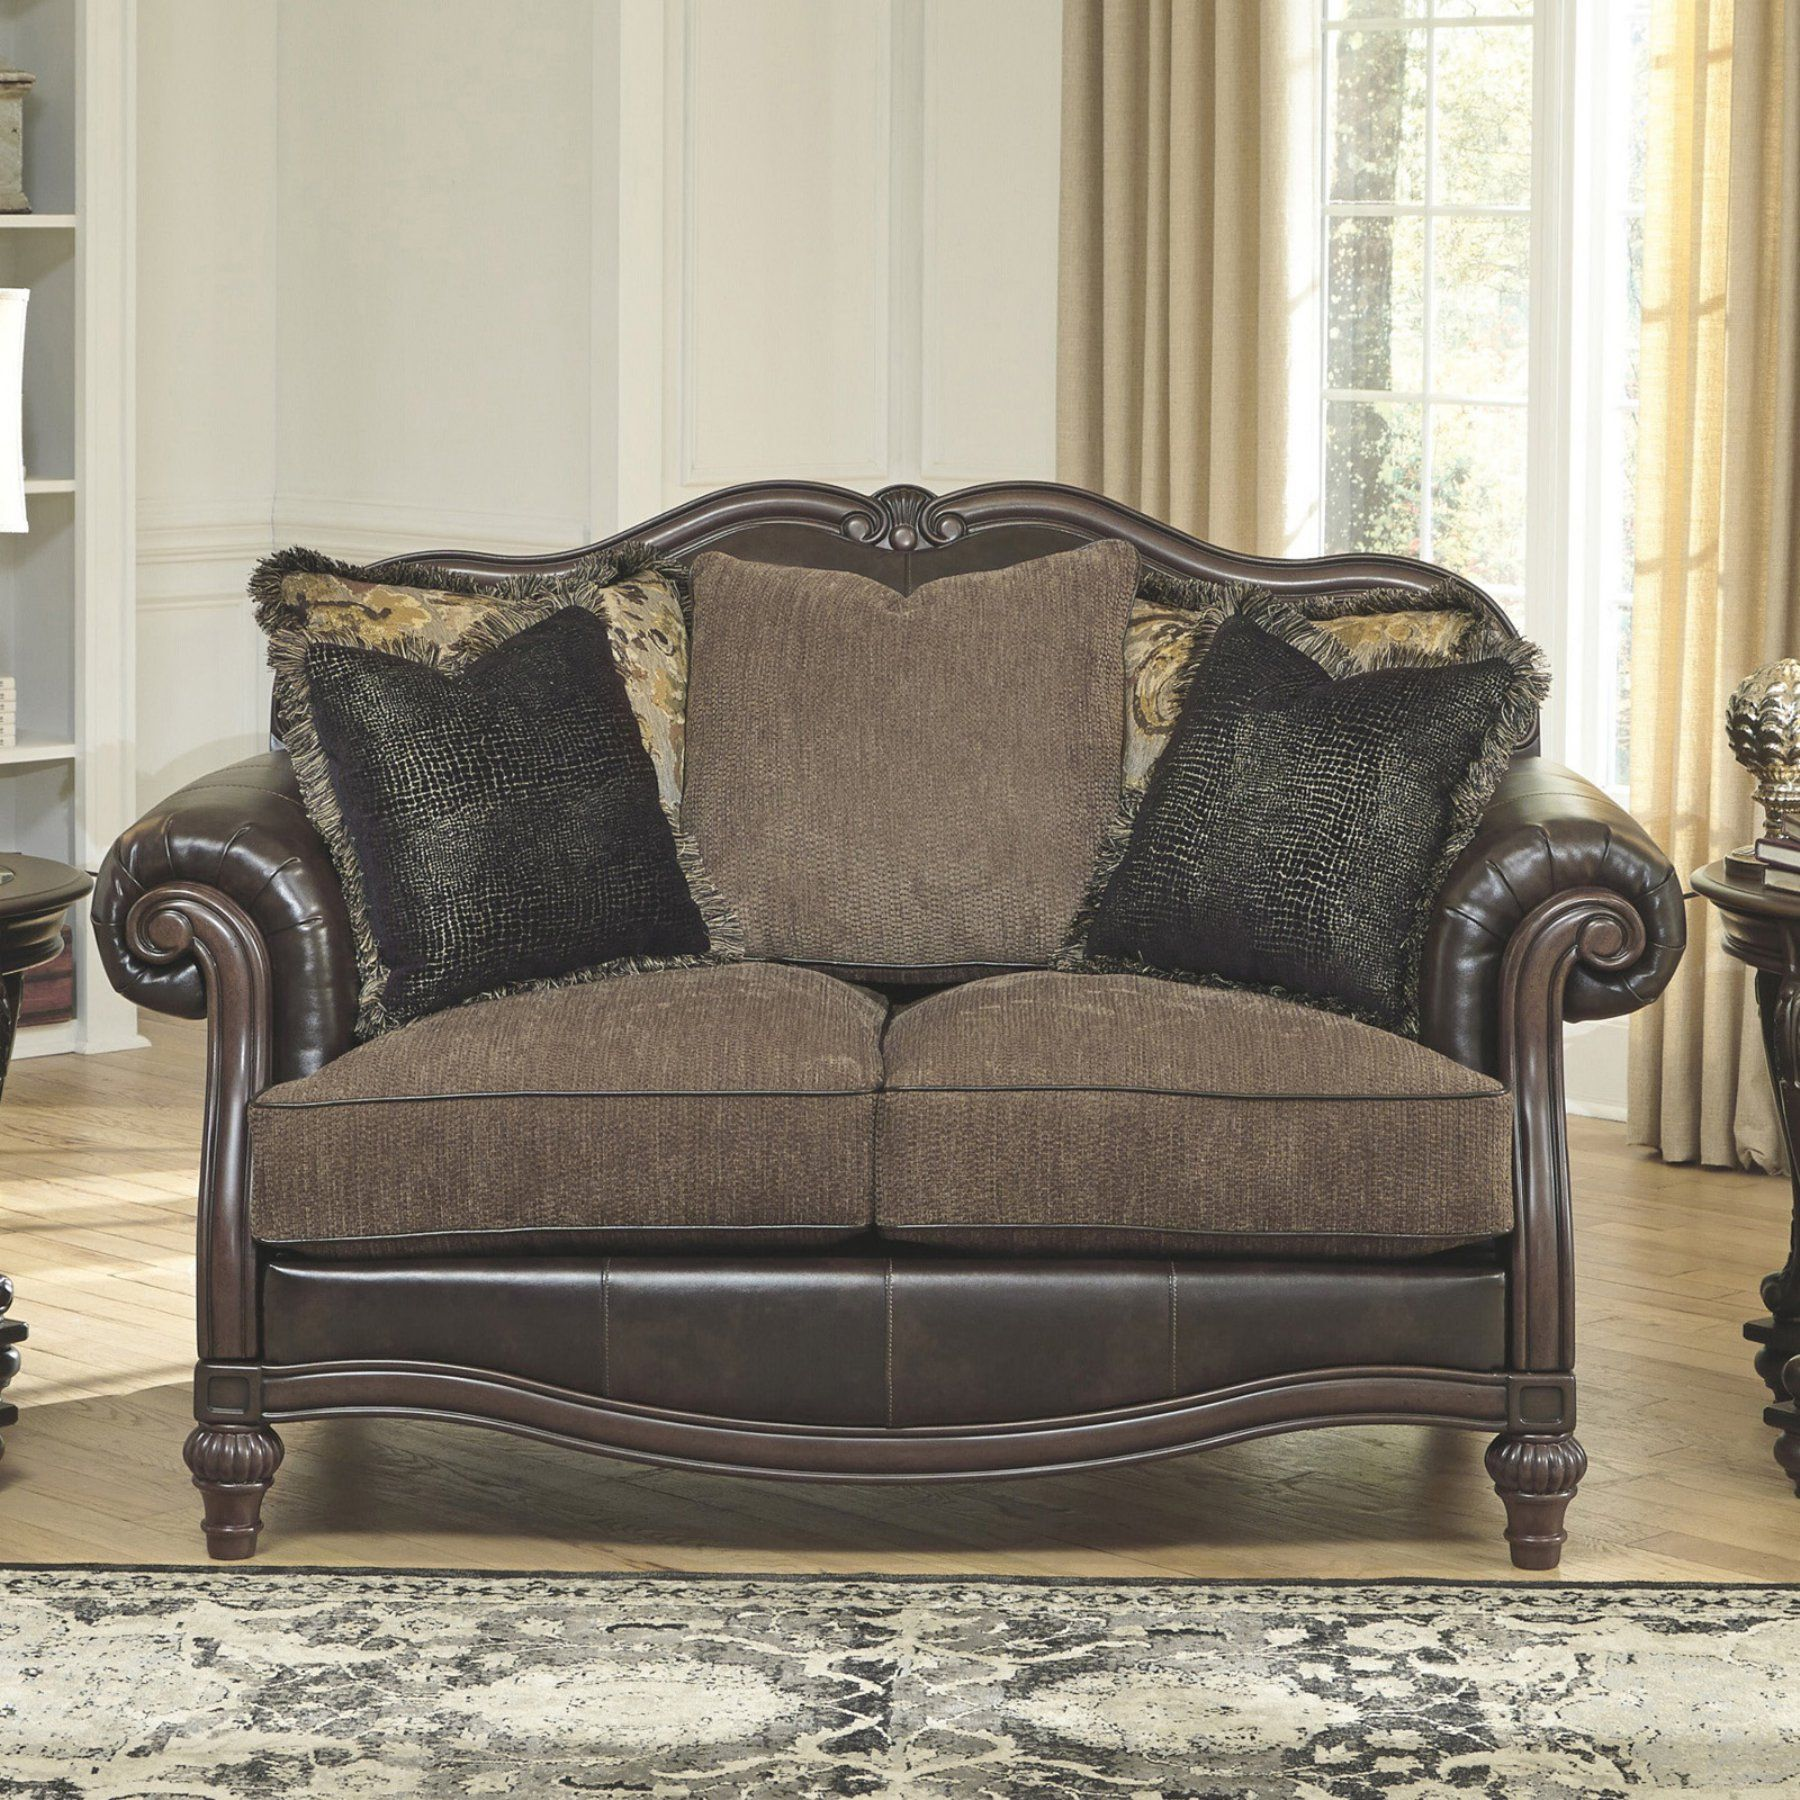 Signature Design By Ashley Winnsboro Durablend Loveseat  5560235